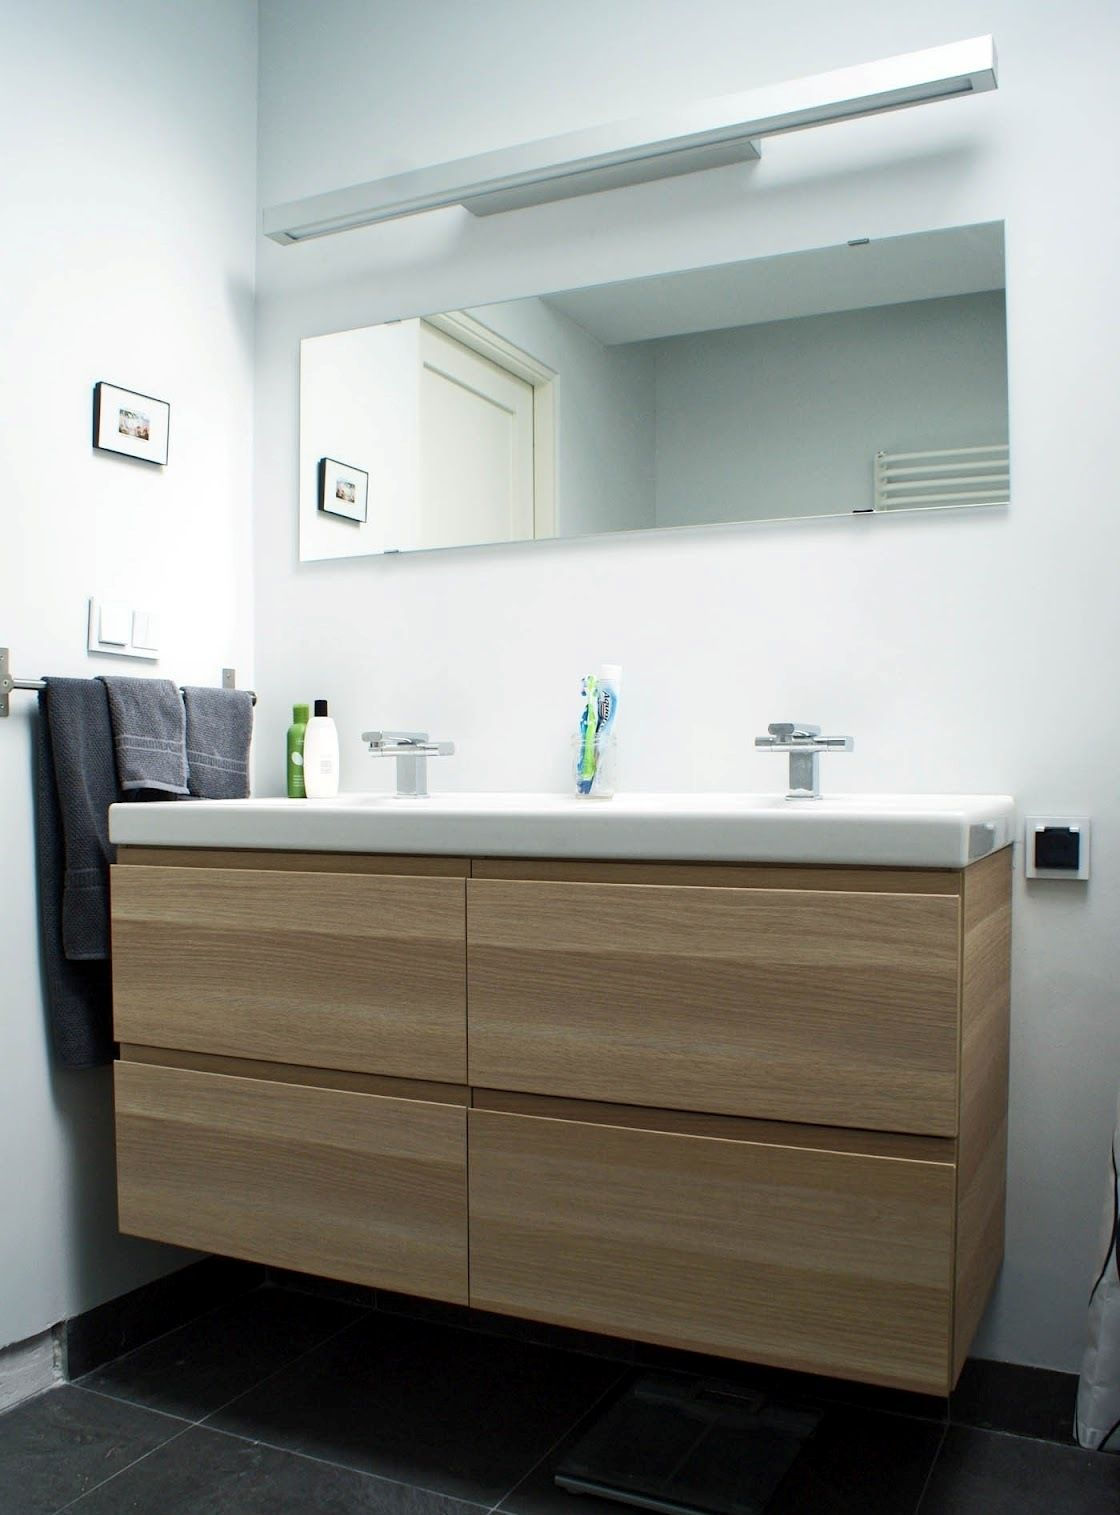 If the vanity doesn't go to the wall, hang a towel rail